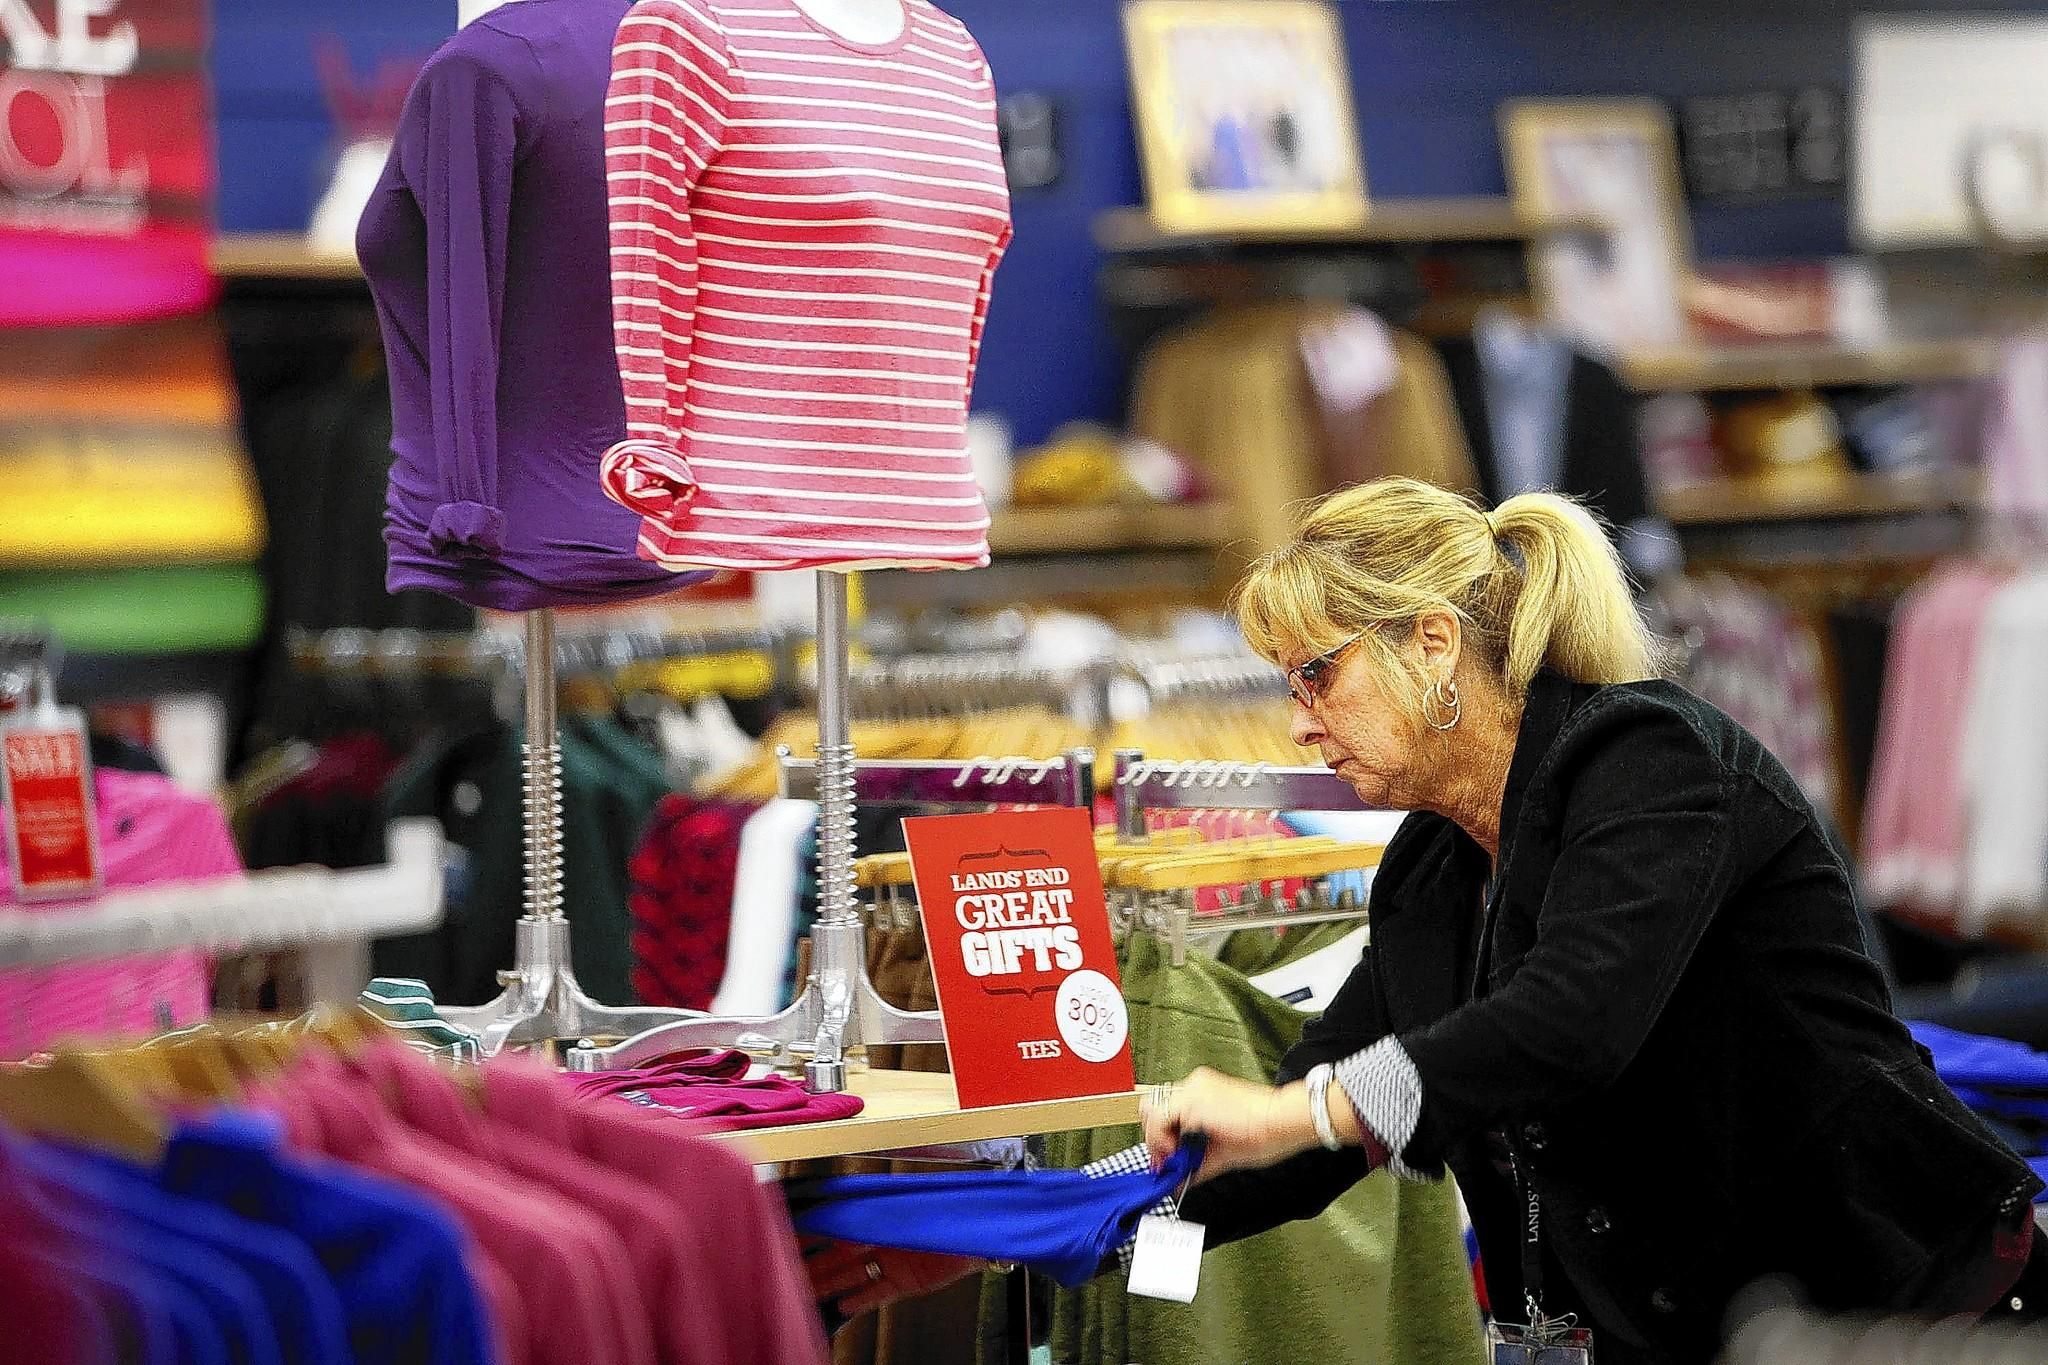 A Lands' End employee organizes apparel at a store in Torrance, Calif. Though the company's spinoff date from Sears Holdings Corp. isn't set, Lands' End will pay Sears a cash dividend of $500 million before the spinoff, financed by a new term loan.